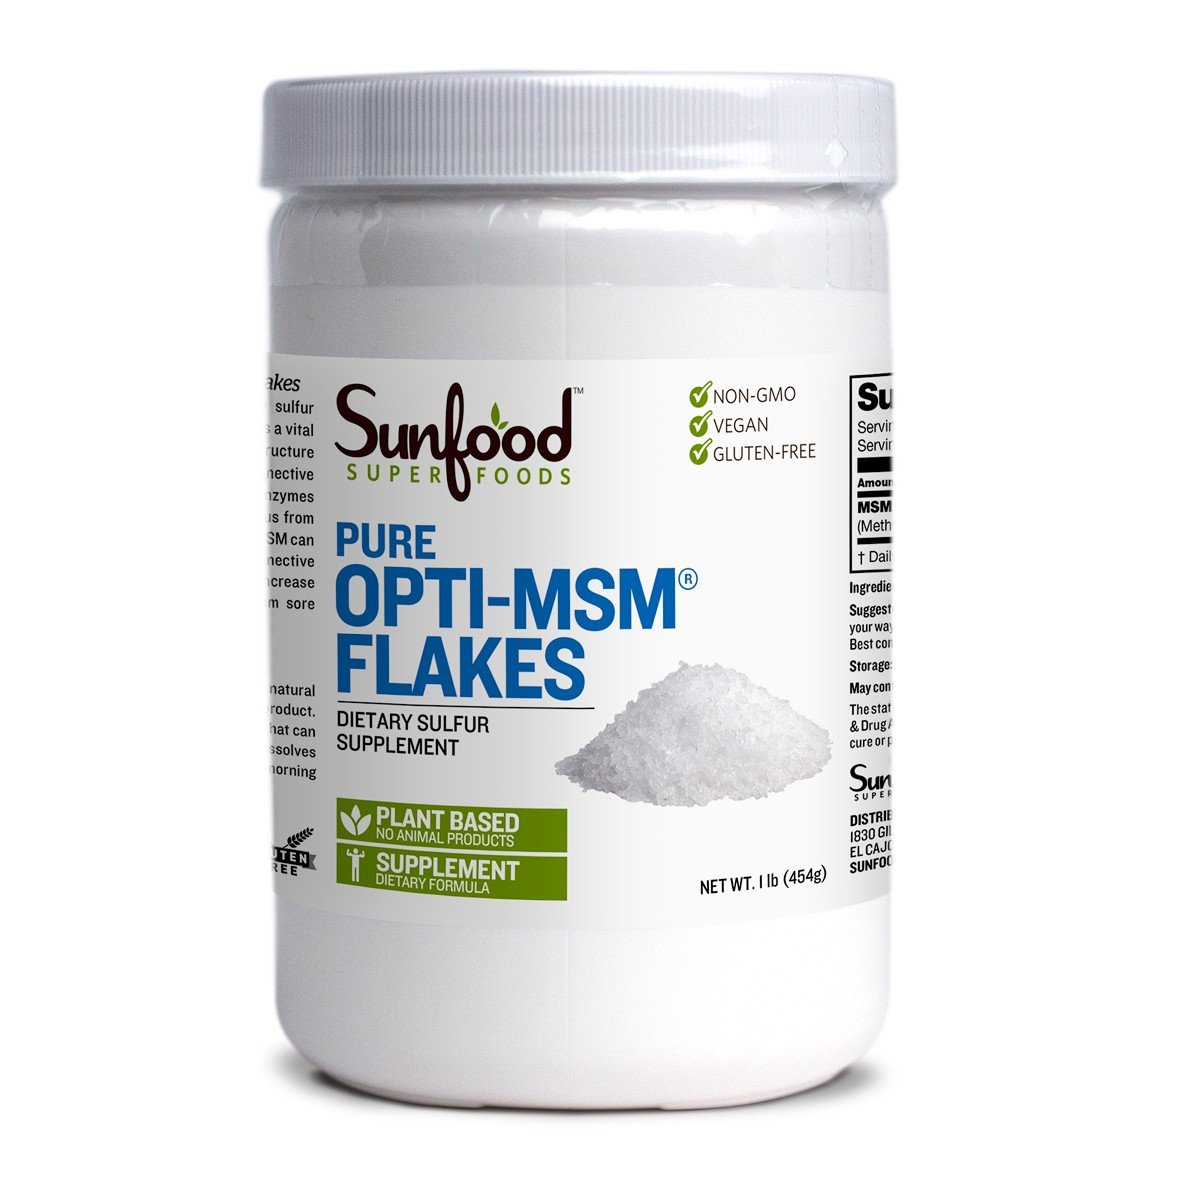 Sunfood Superfoods Opti-MSM Flakes- Bulk Value. 100% Pure Dietary Sulfur Supplement. Highest Quality MSM. Build Collagen, Anti-Inflammatory. Plant Based. Non-GMO, Gluten-Free, Vegan.1 lb Tub